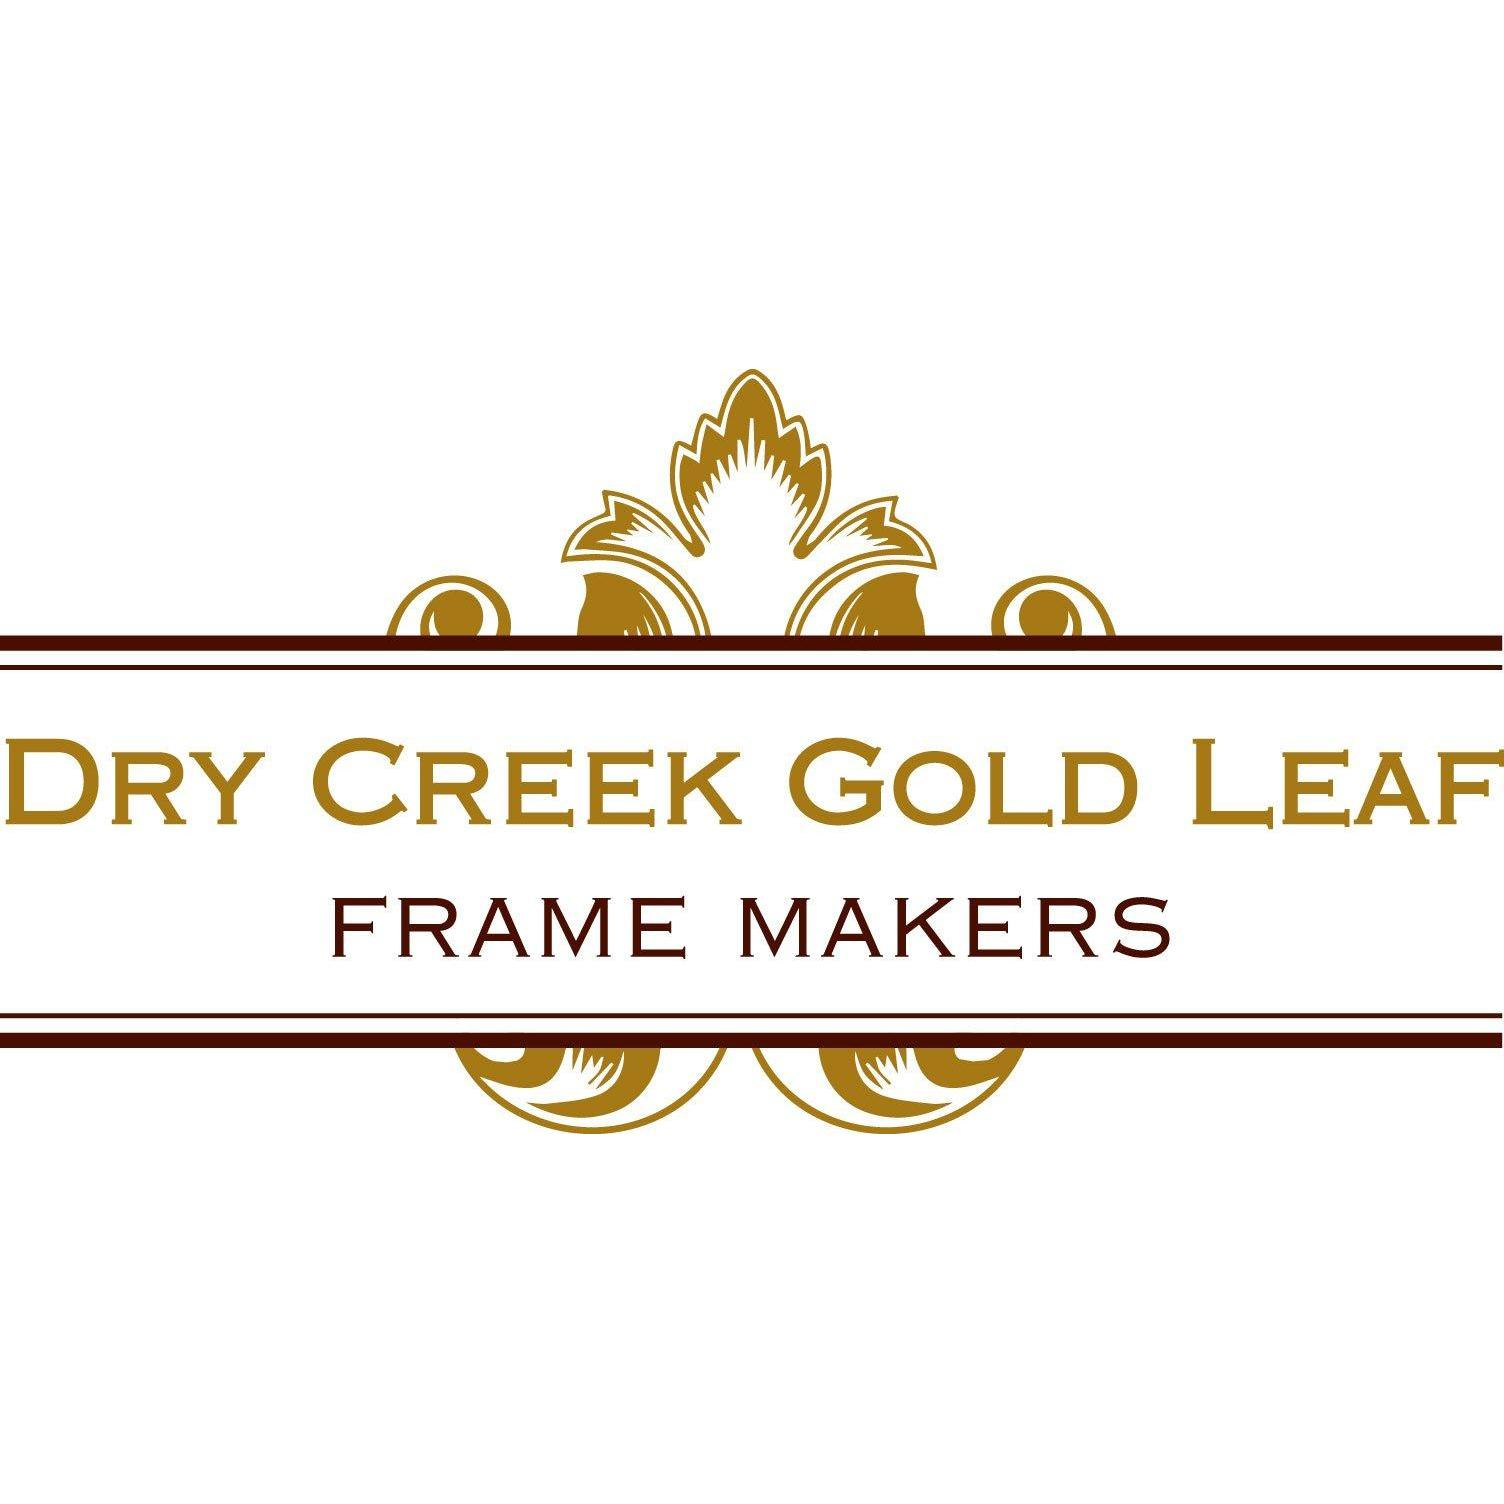 Dry Creek Gold Leaf Frame Makers